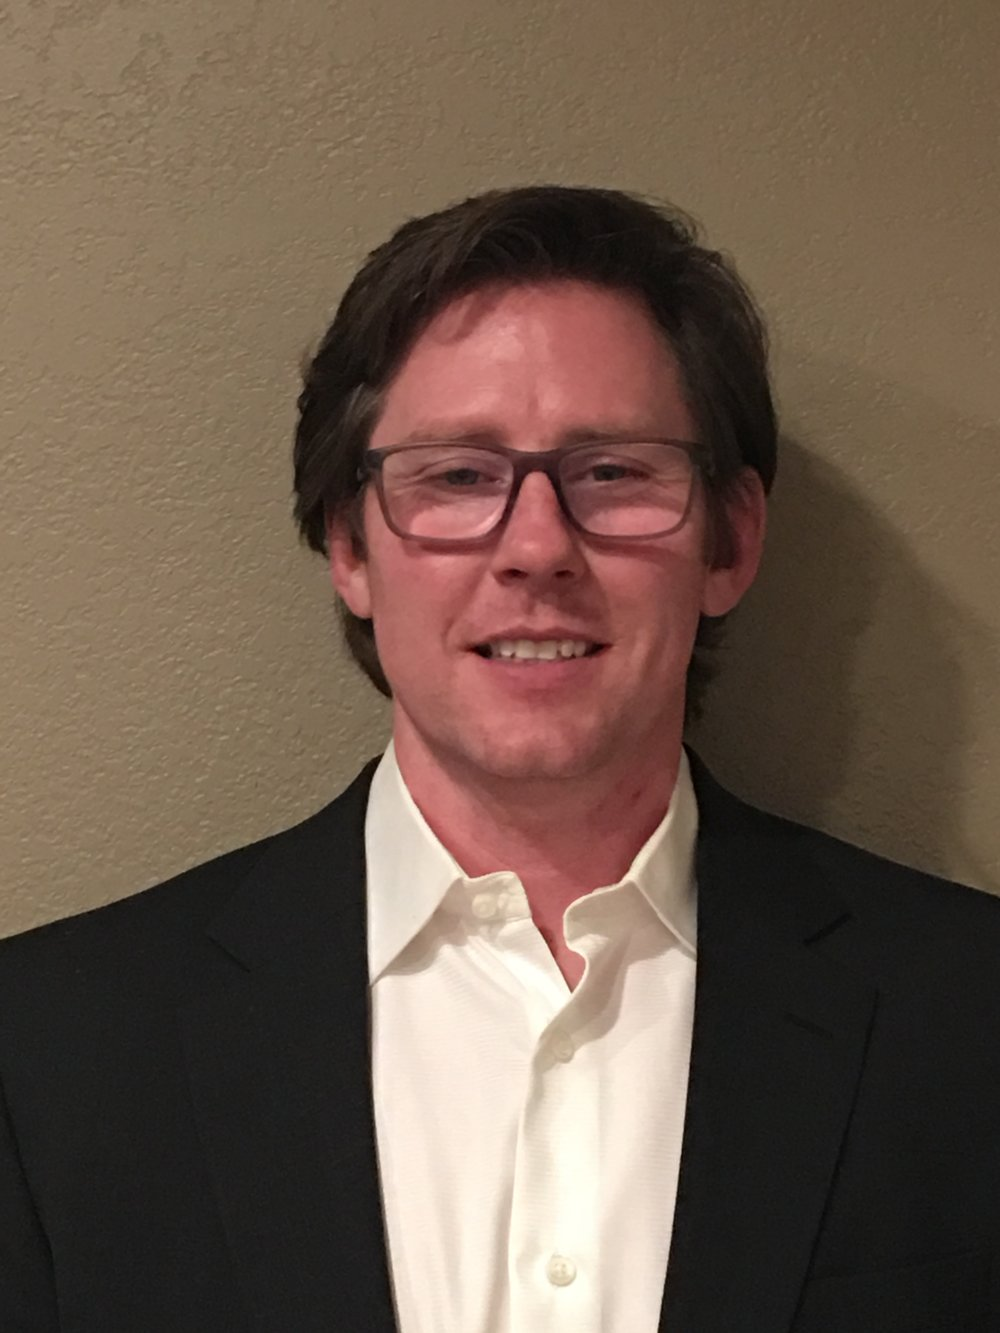 Chris Hogan, CRO - Chris is a seasoned growth leader in the streaming technology industry with unique expertise in the educational sector. He is a customer-centric and passionate executive with a proven track record of transforming markets with breakthrough products.